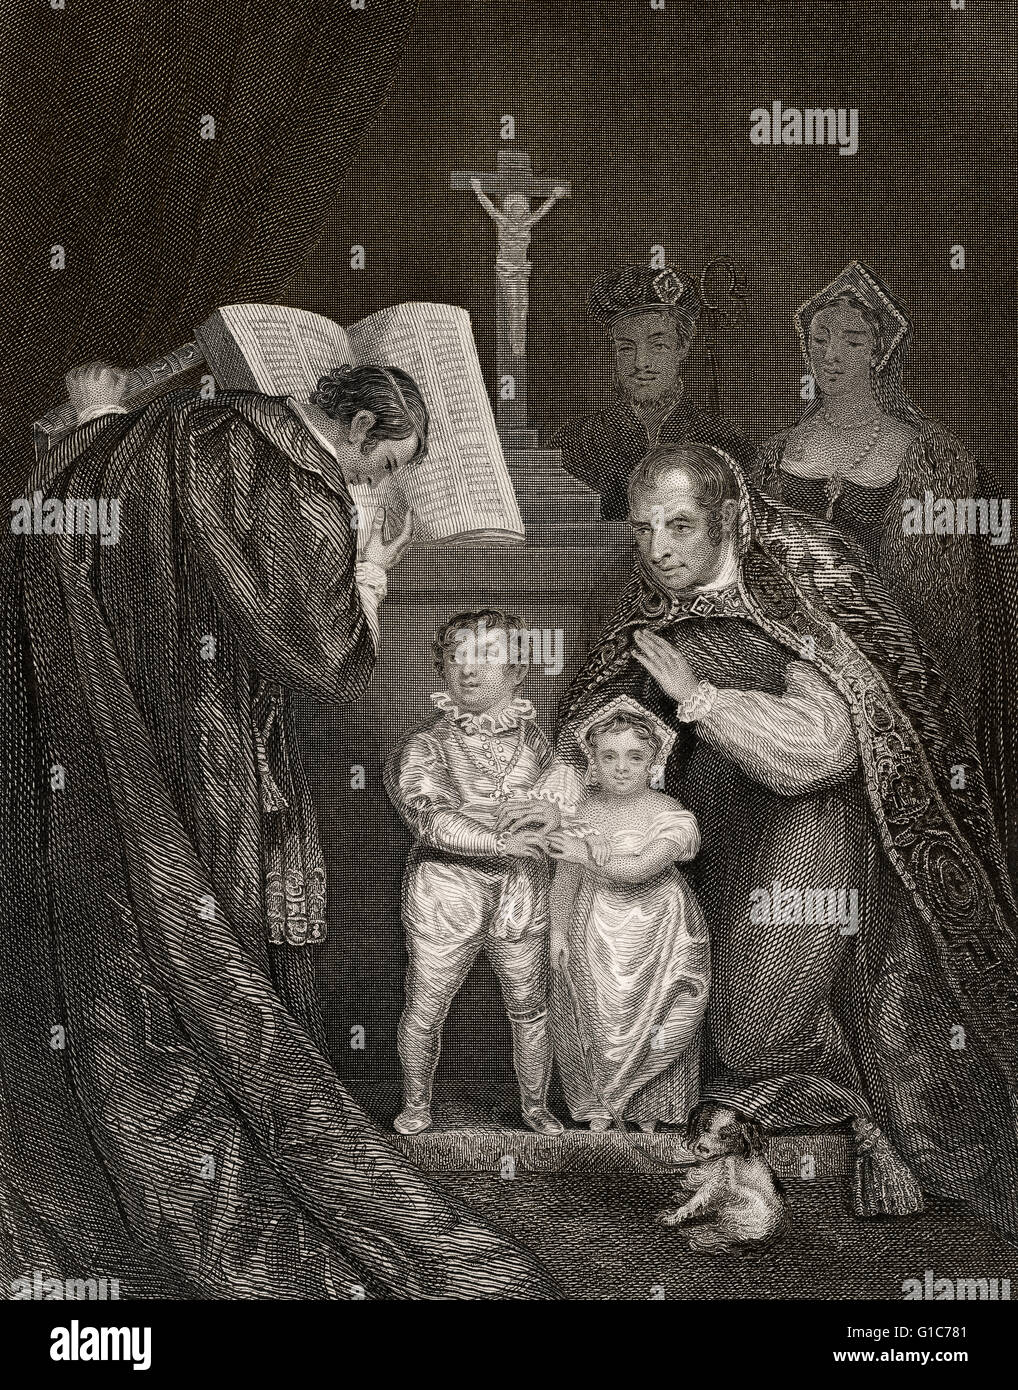 The marriage of Lady Anne Mowbray with Richard of Shrewsbury, Duke of York, St Stephen's Chapel, Westminster, - Stock Image